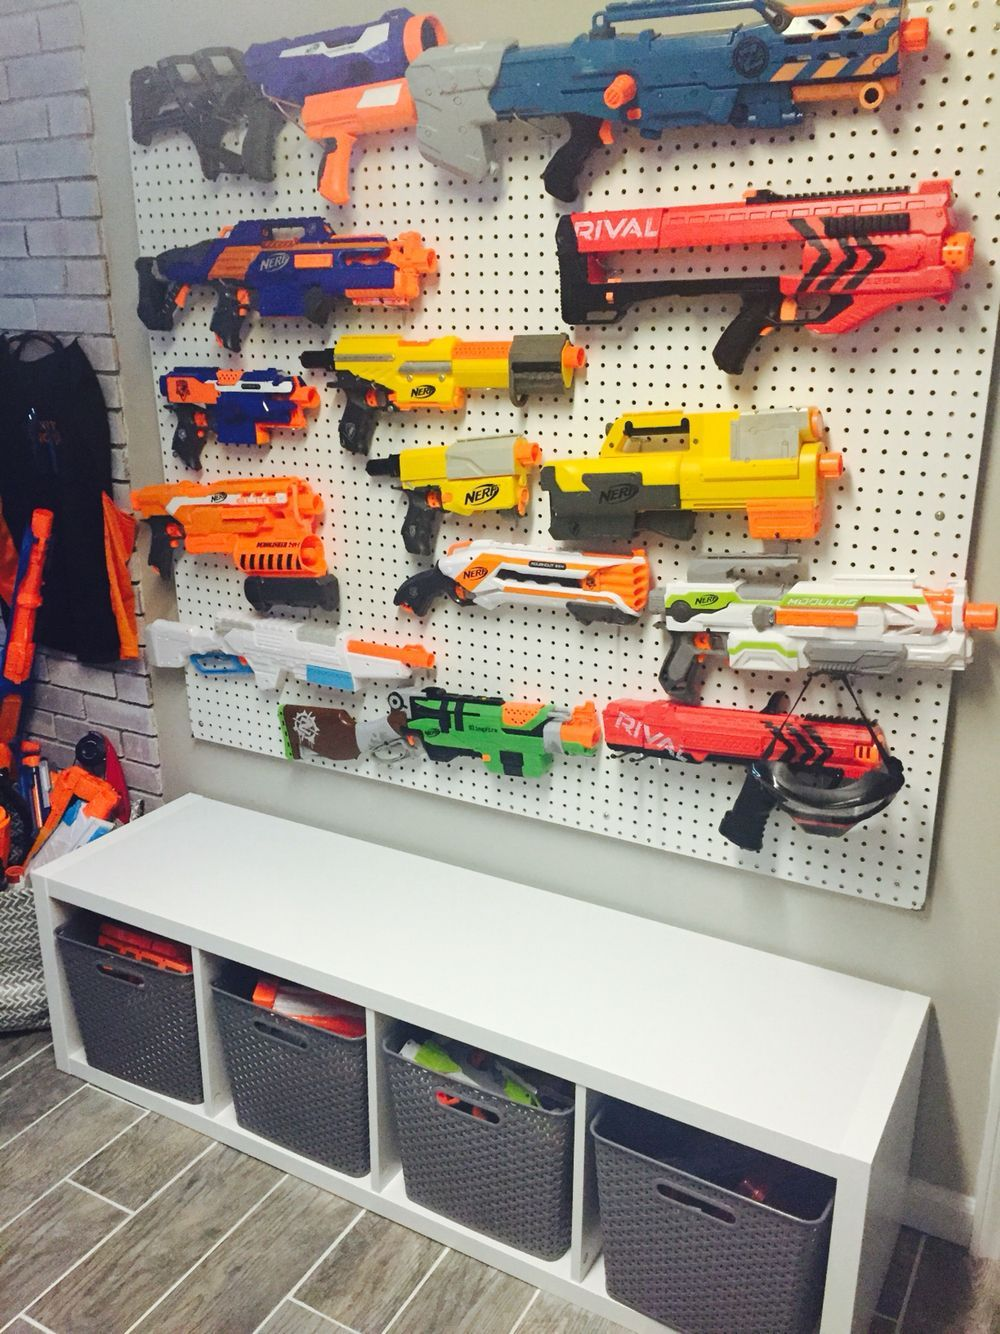 19 Unique Toy Storage Ideas for Kid's Playroom, Bedroom & Small Space Living Room 2019 images